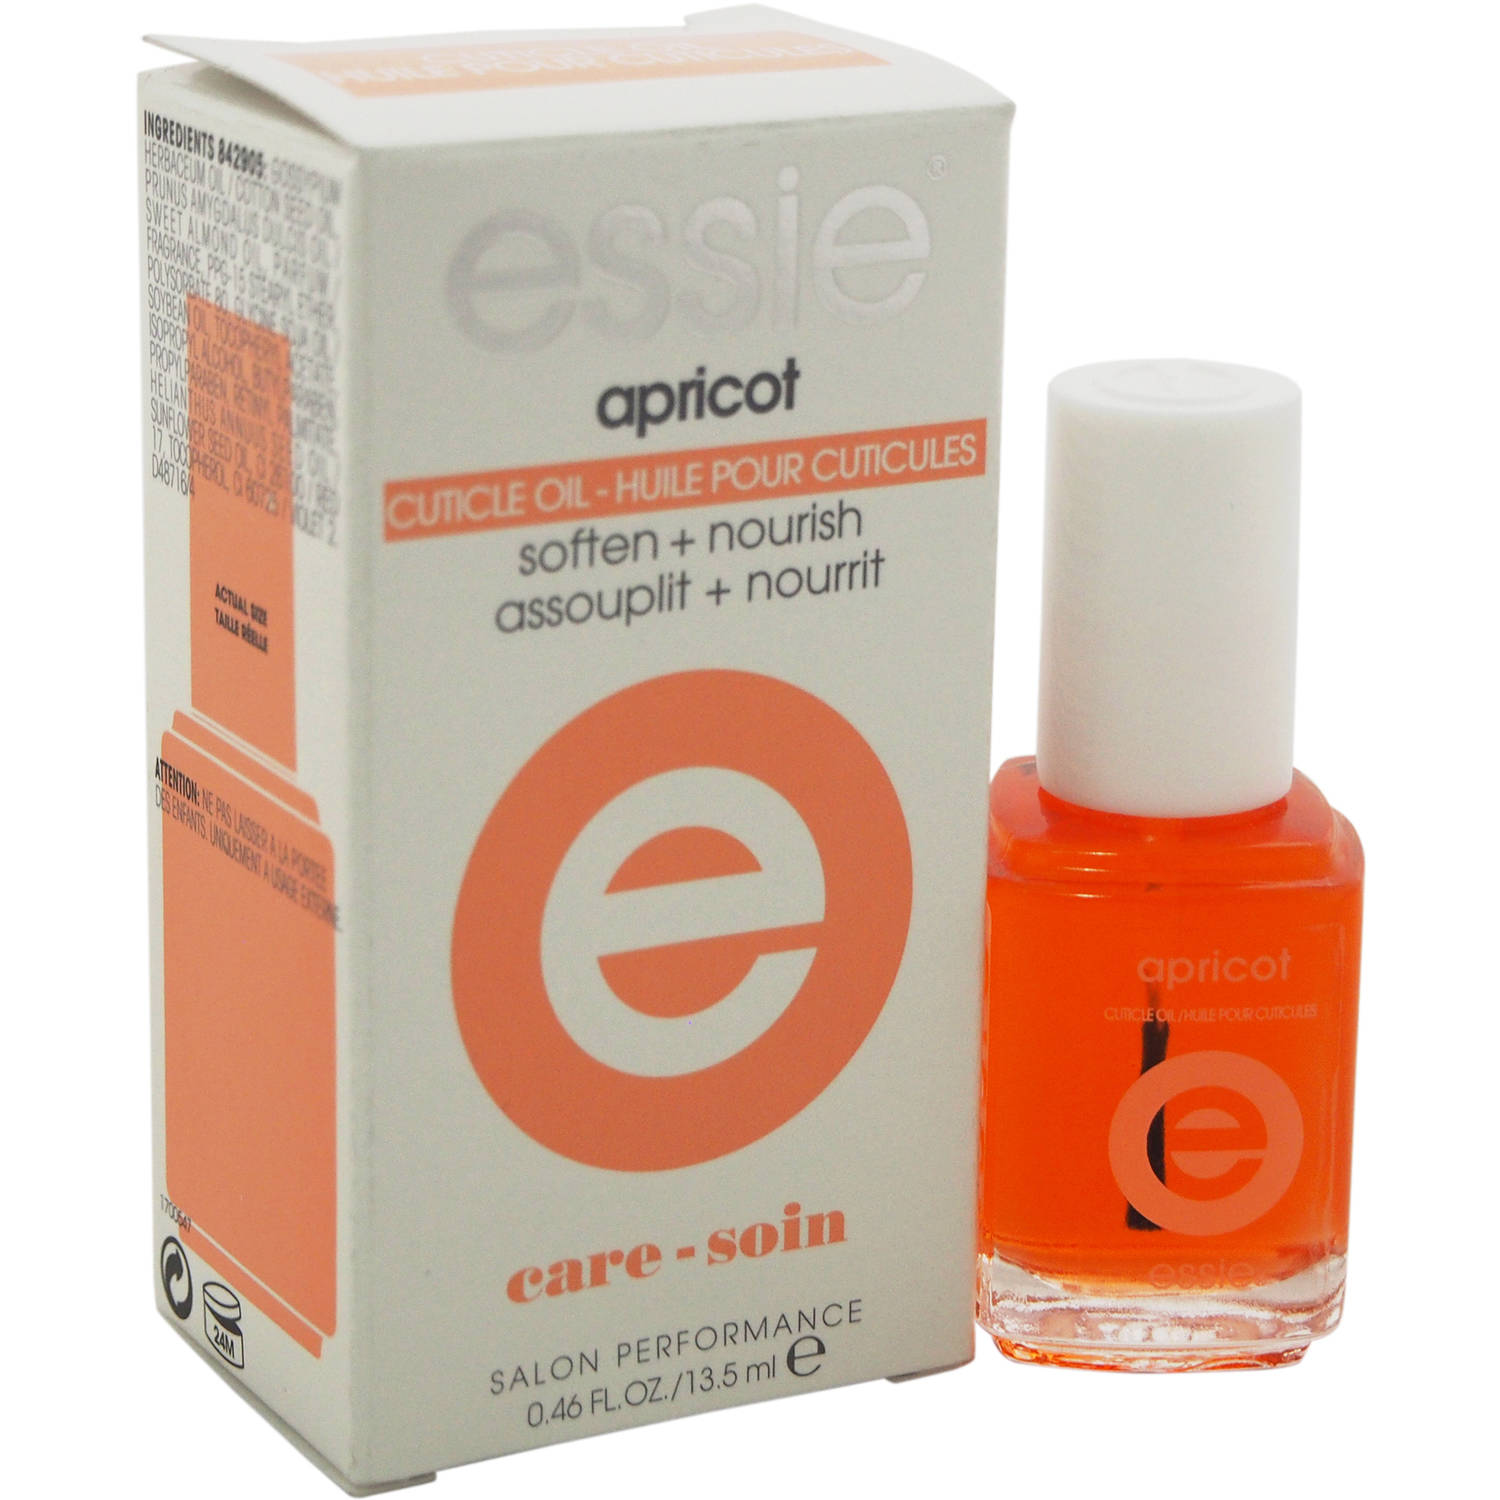 essie for Women Apricot Cuticle Oil Soft + Nourish Nail Care 0.46 oz